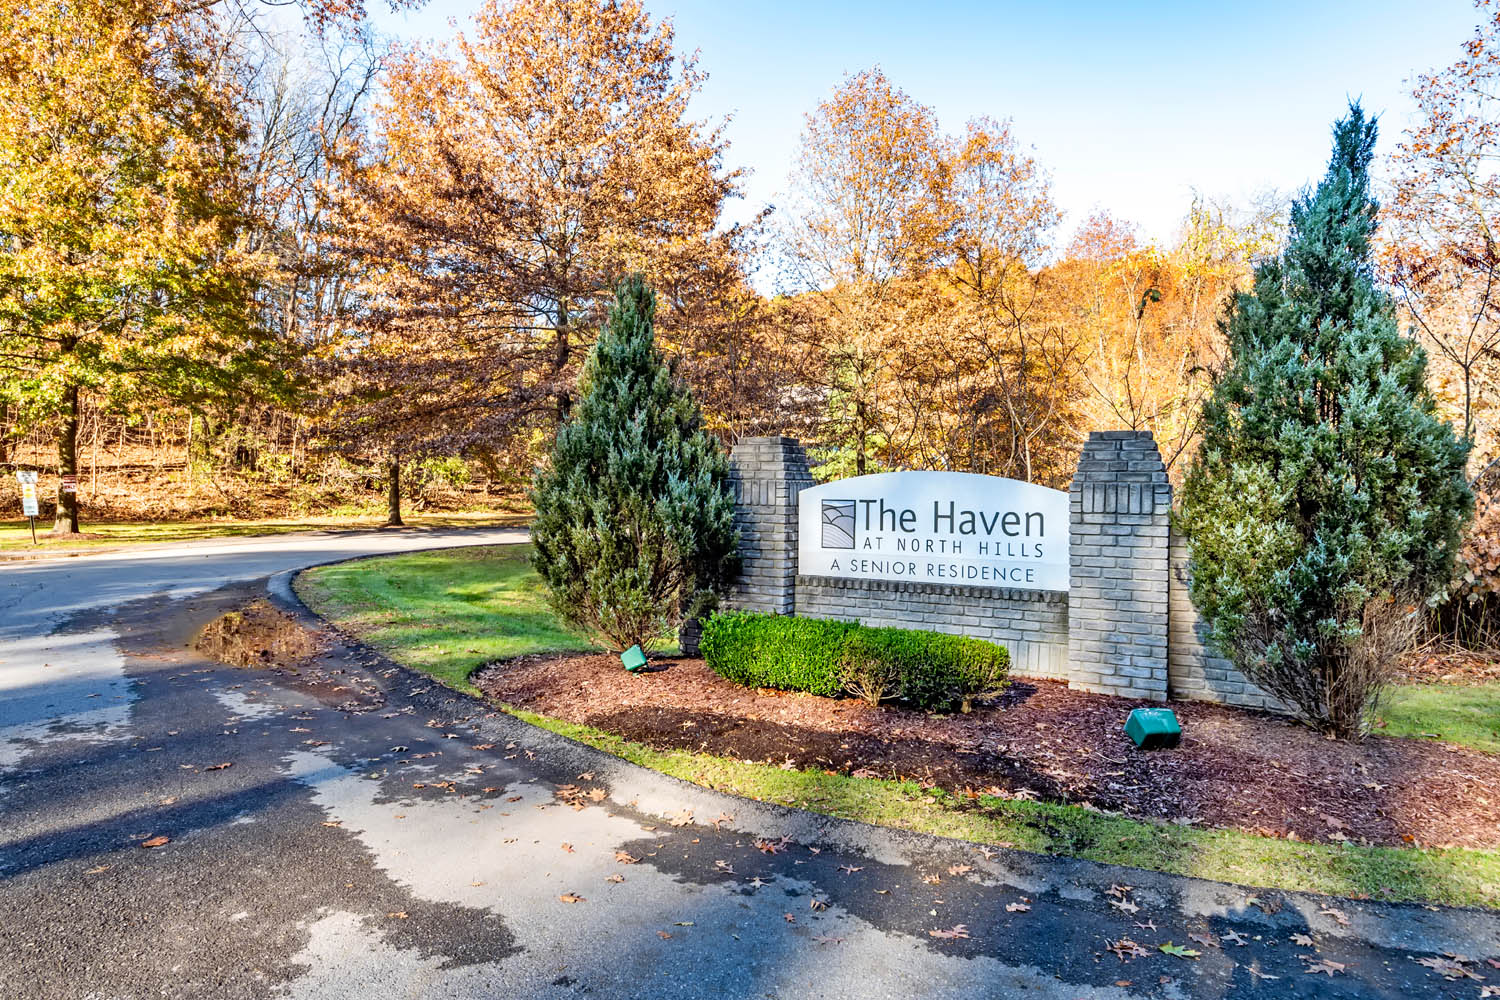 The Haven at North Hills Photo